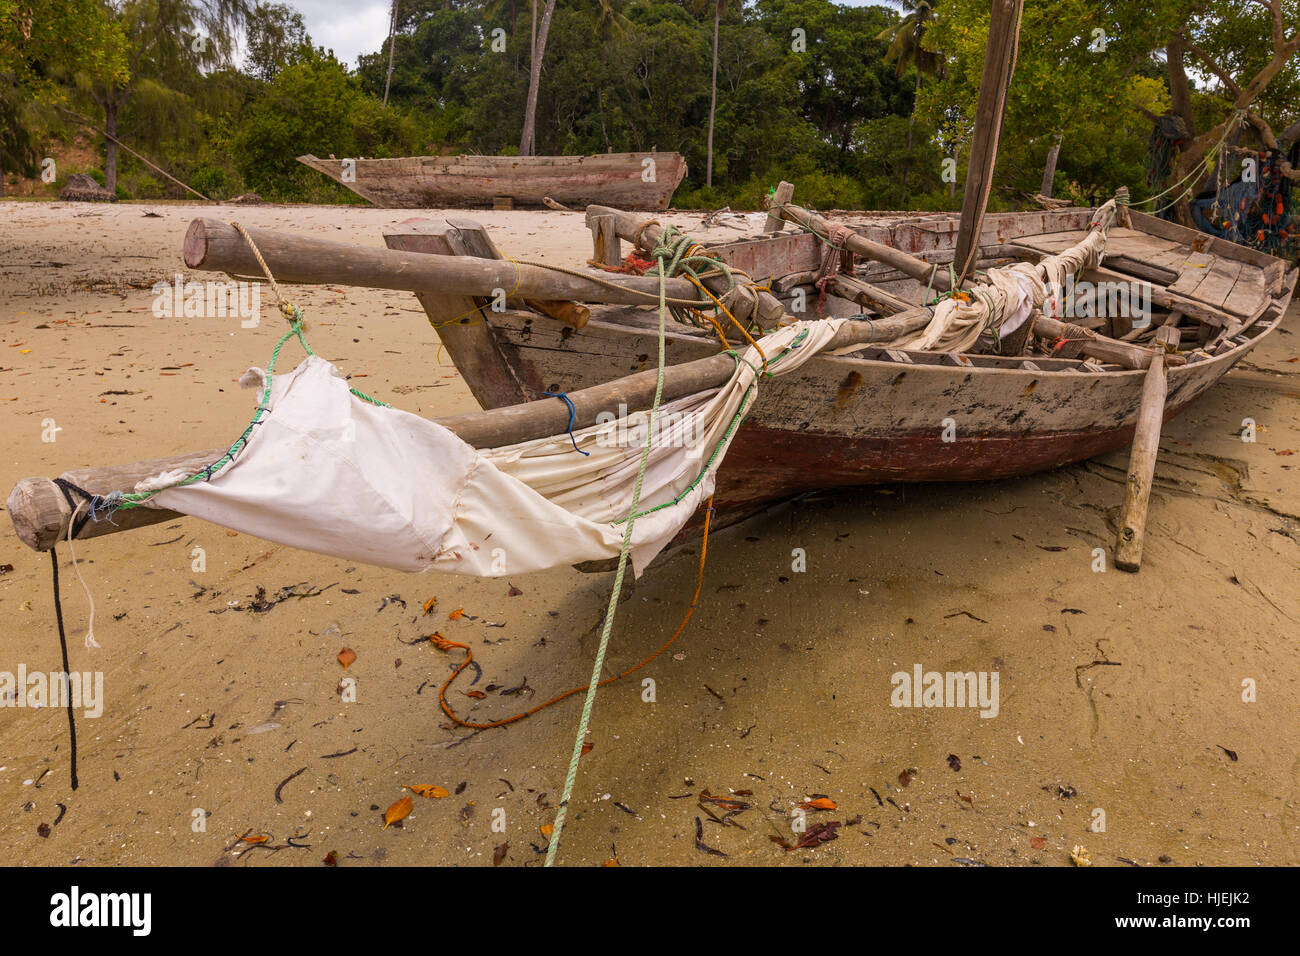 Big primitive fisherman wooden boat on beach with white sails and thin sailing masts made by native people, Uzi - Stock Image